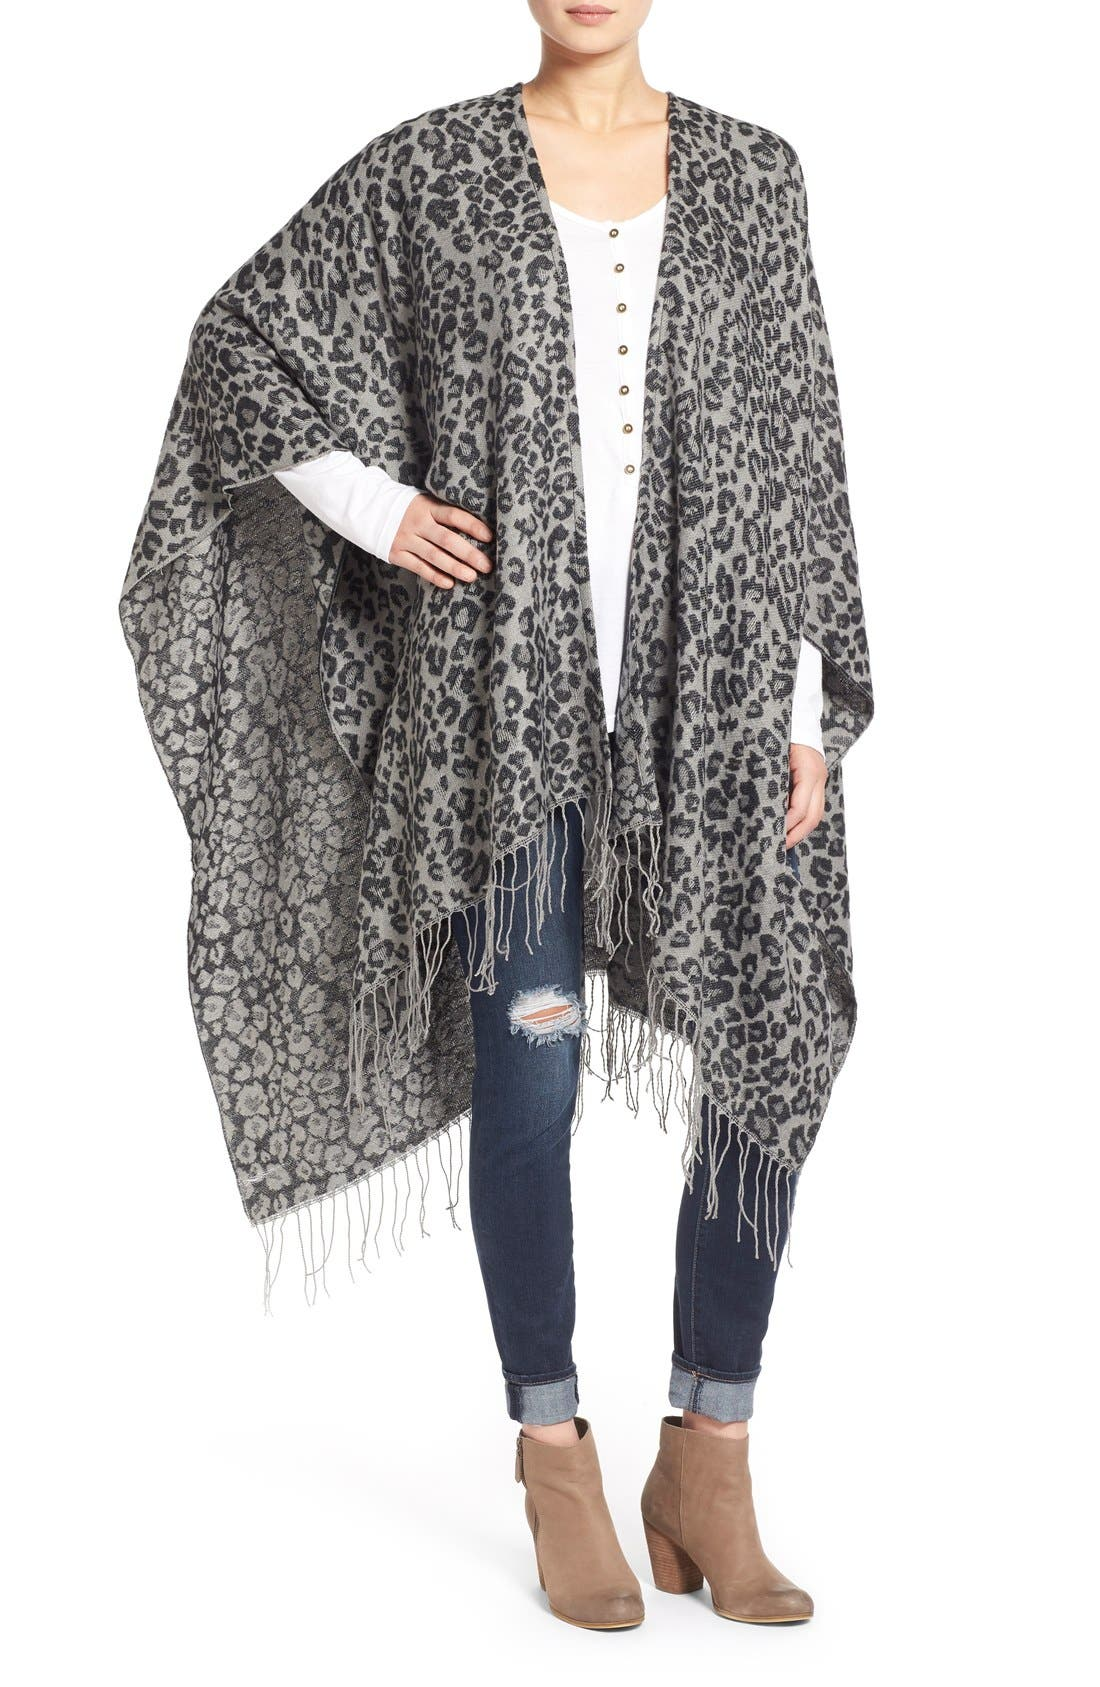 Main Image - Capelli of New York Leopard Print Knit Cape